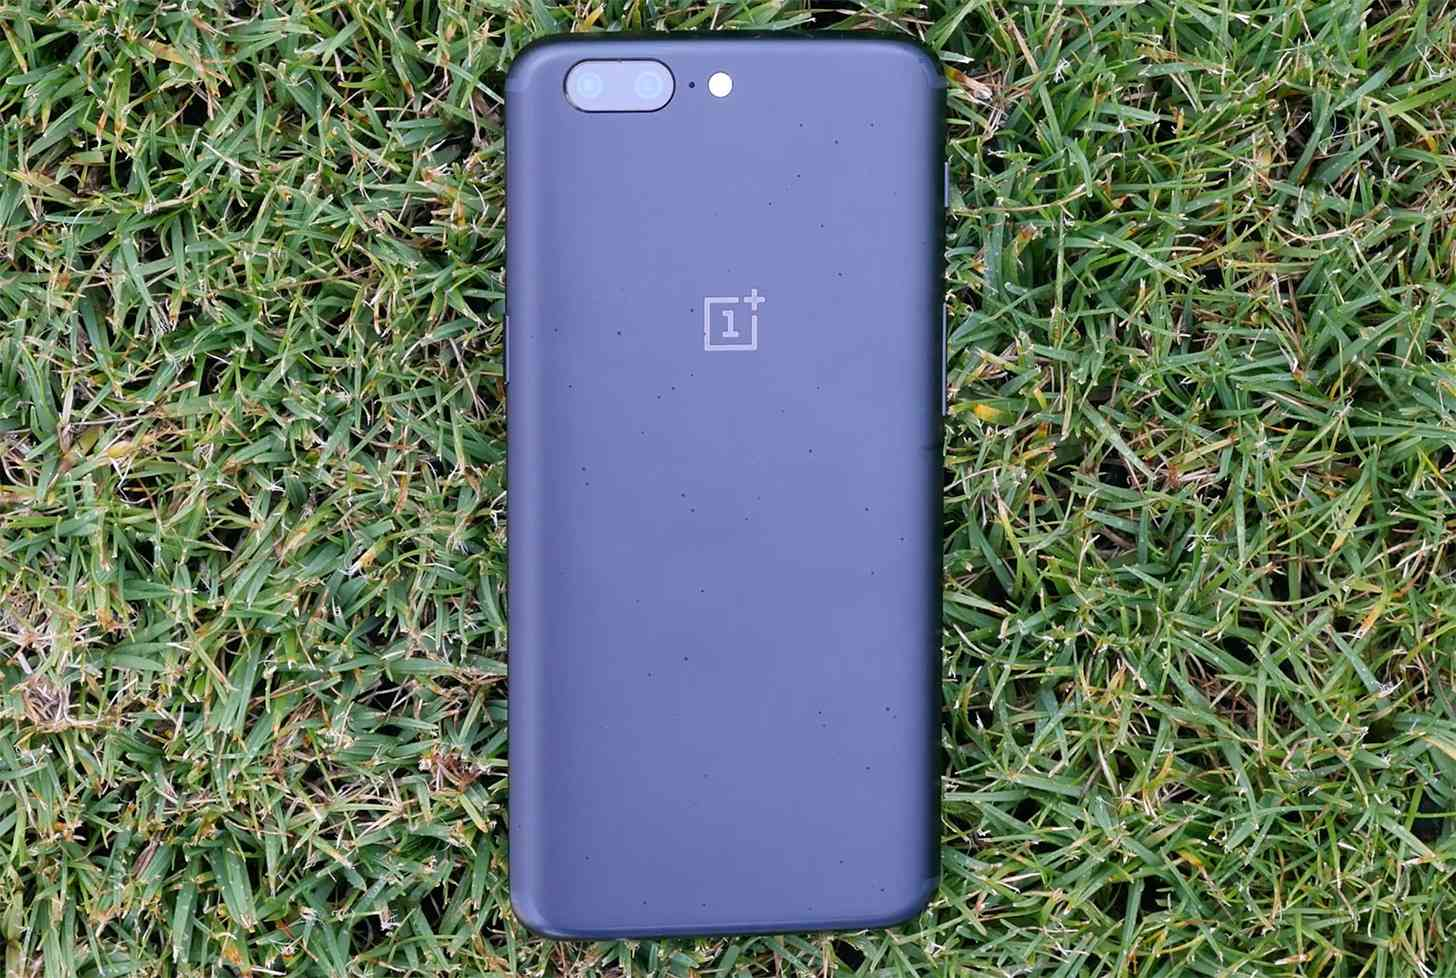 OnePlus 5 hands-on video review